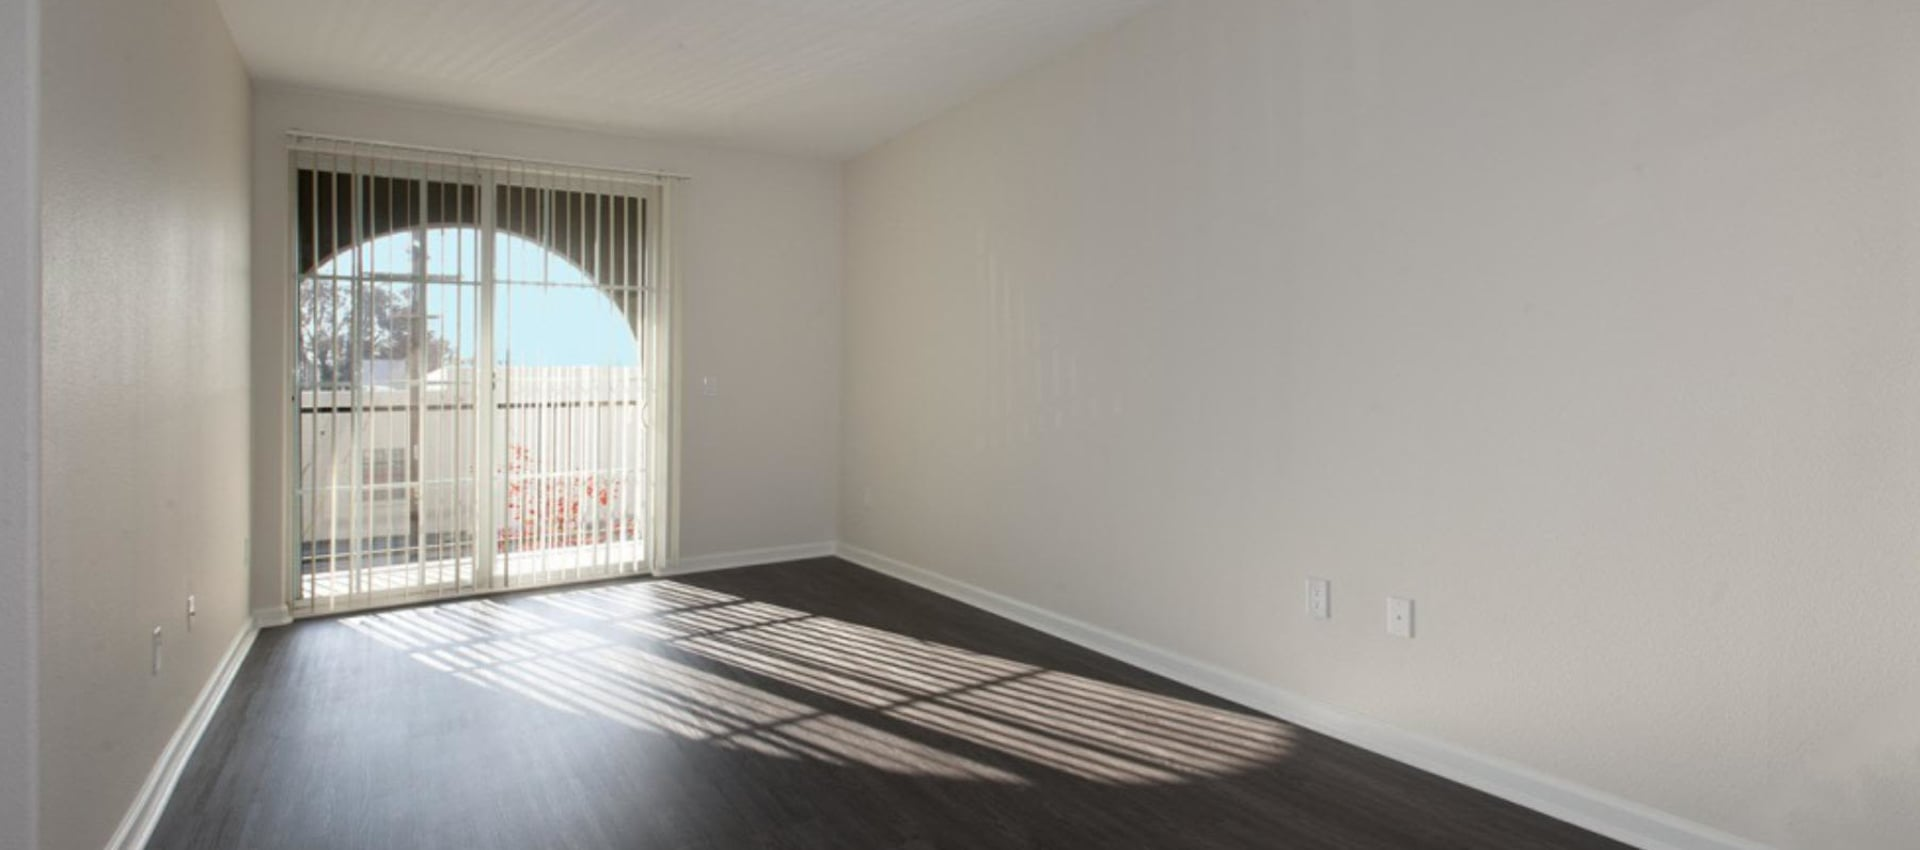 Hardwood floor in bright living room with large windows at Park Central in Concord, California